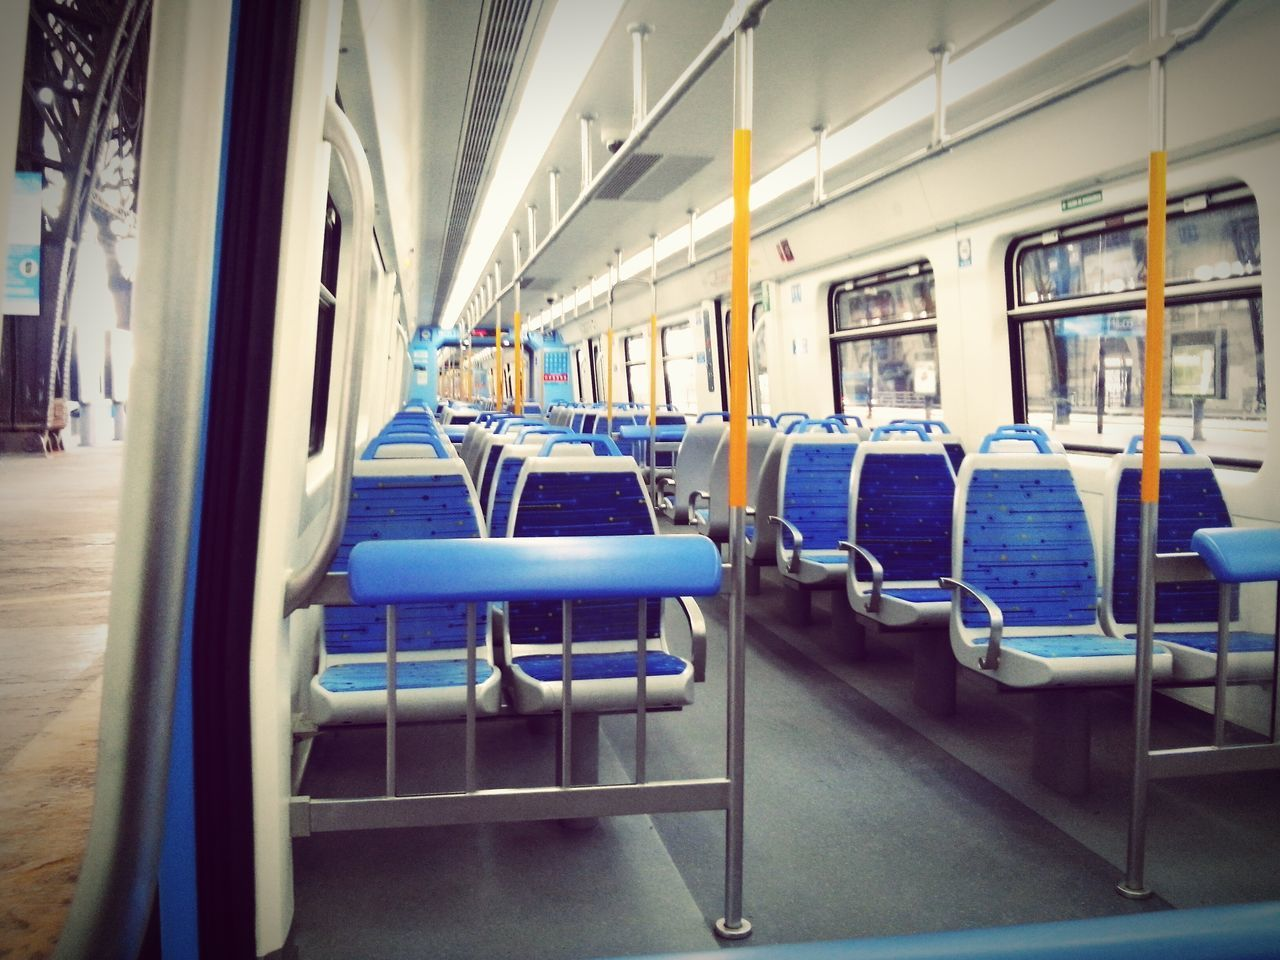 That's an empty and very clean train 🚉, hehe Happy Clean Place Train Station Empty Sunday Afternoon